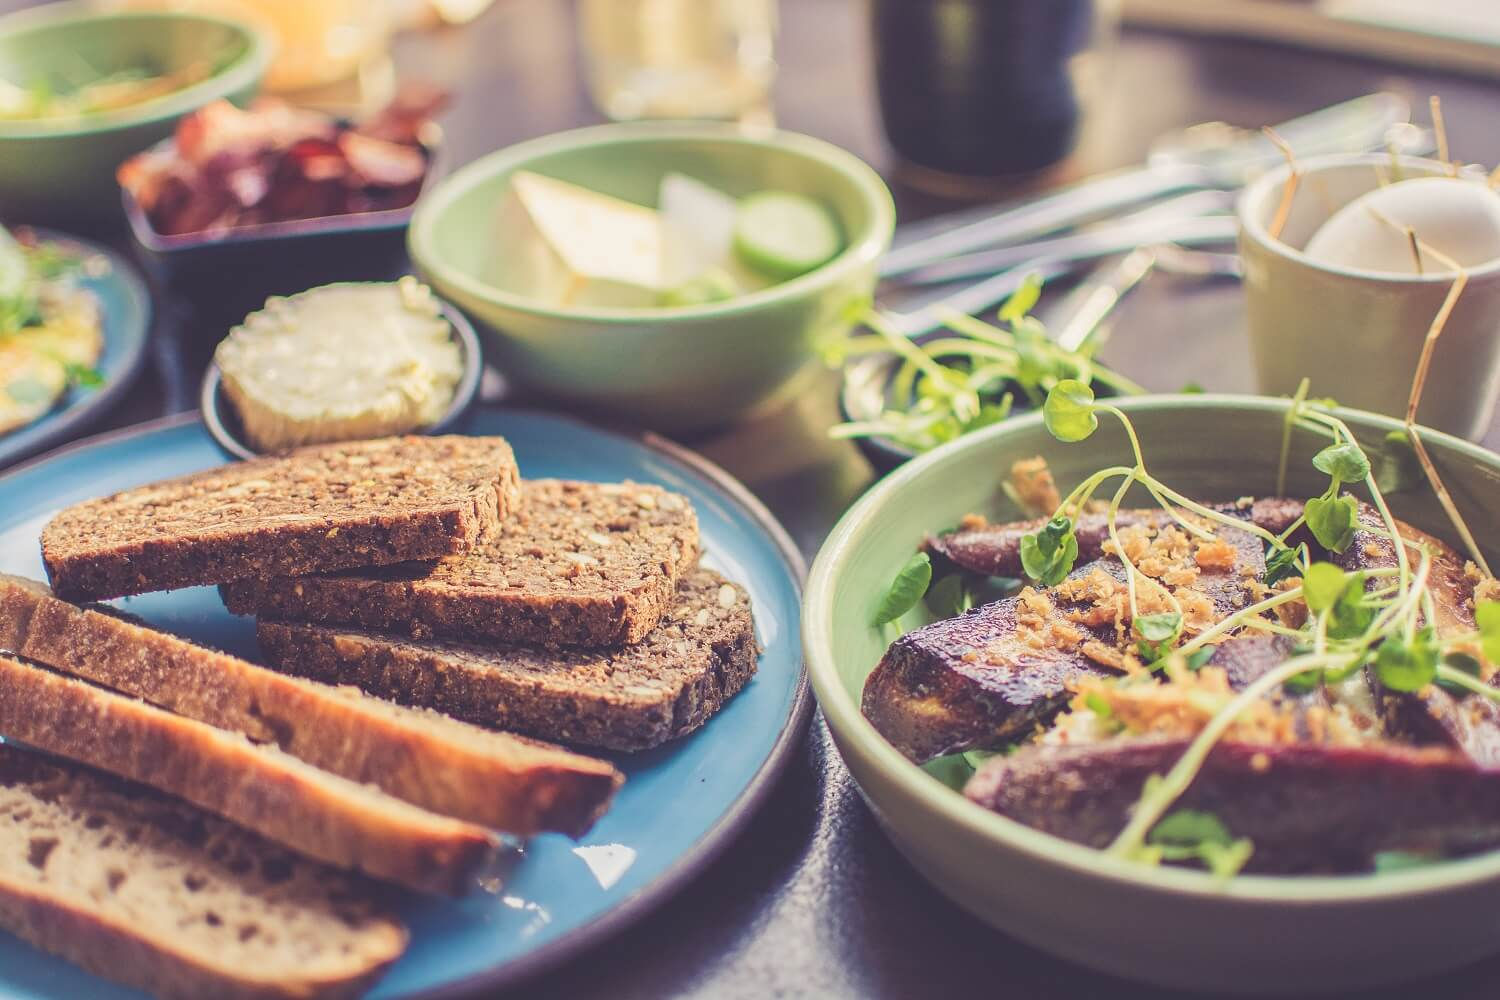 Midlife weight gain around the middle can be due to many reasons and not necessarily a particular food or drink that you're consuming. It can be frustrating if you haven't done anything different but you're experiencing mid 40s weight gain. Find out what you can do to reduce or halt your midlife weight gain. midlifemenu.com/blog/midlife-weight-gain